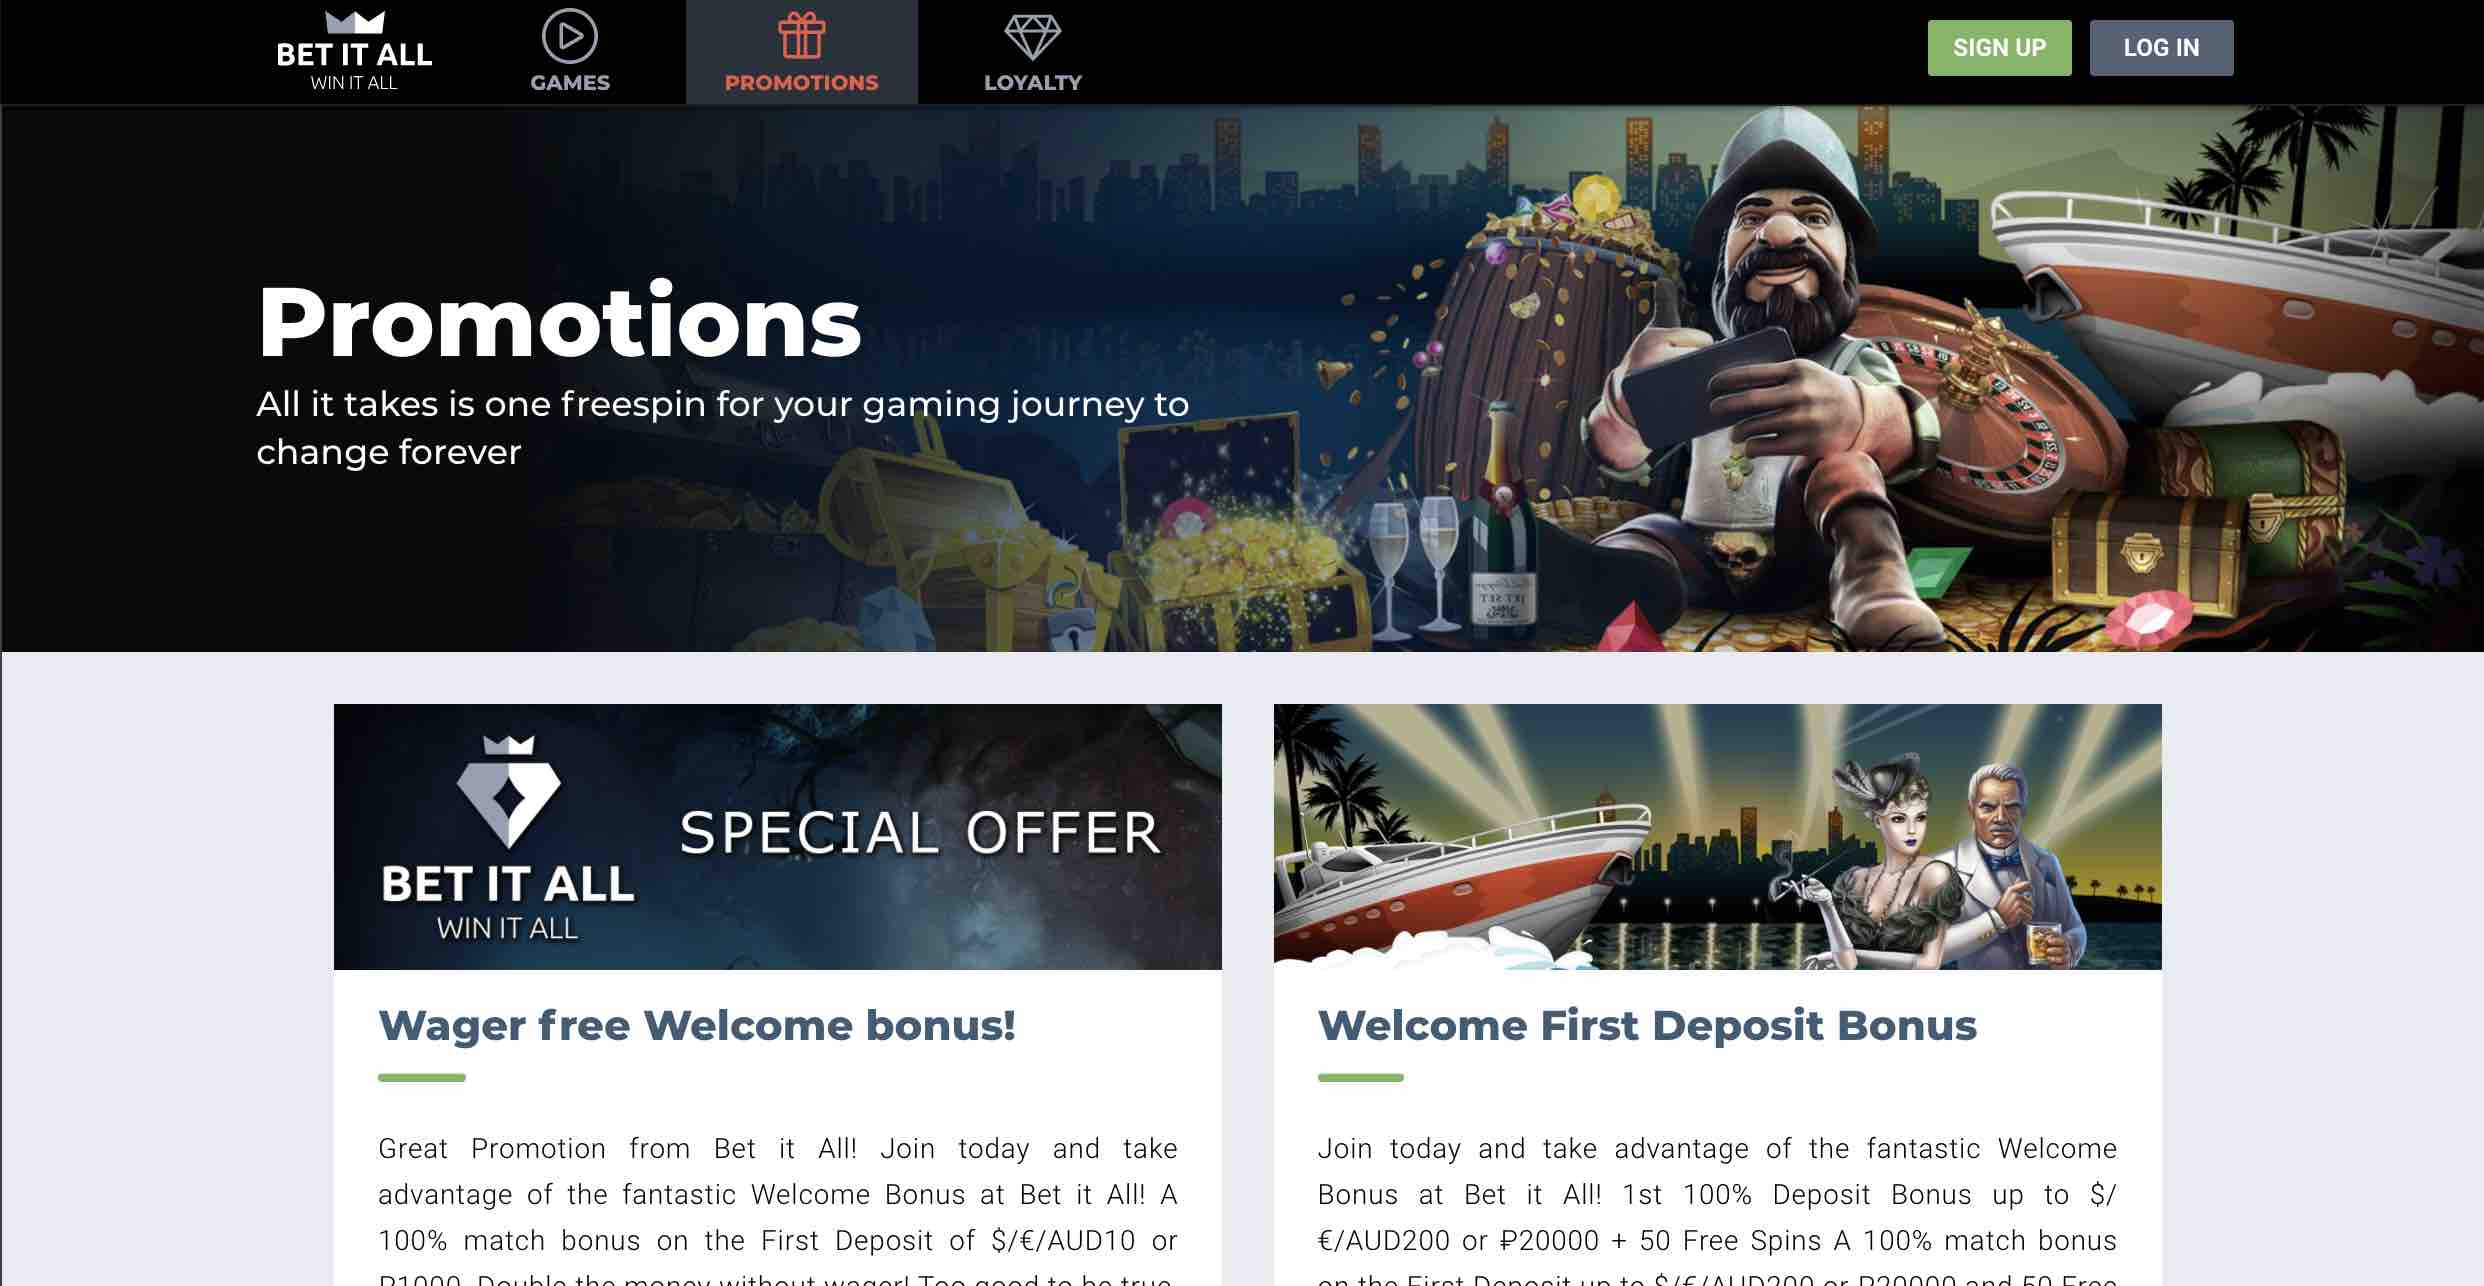 Promotions and Bonuses at Bet It All